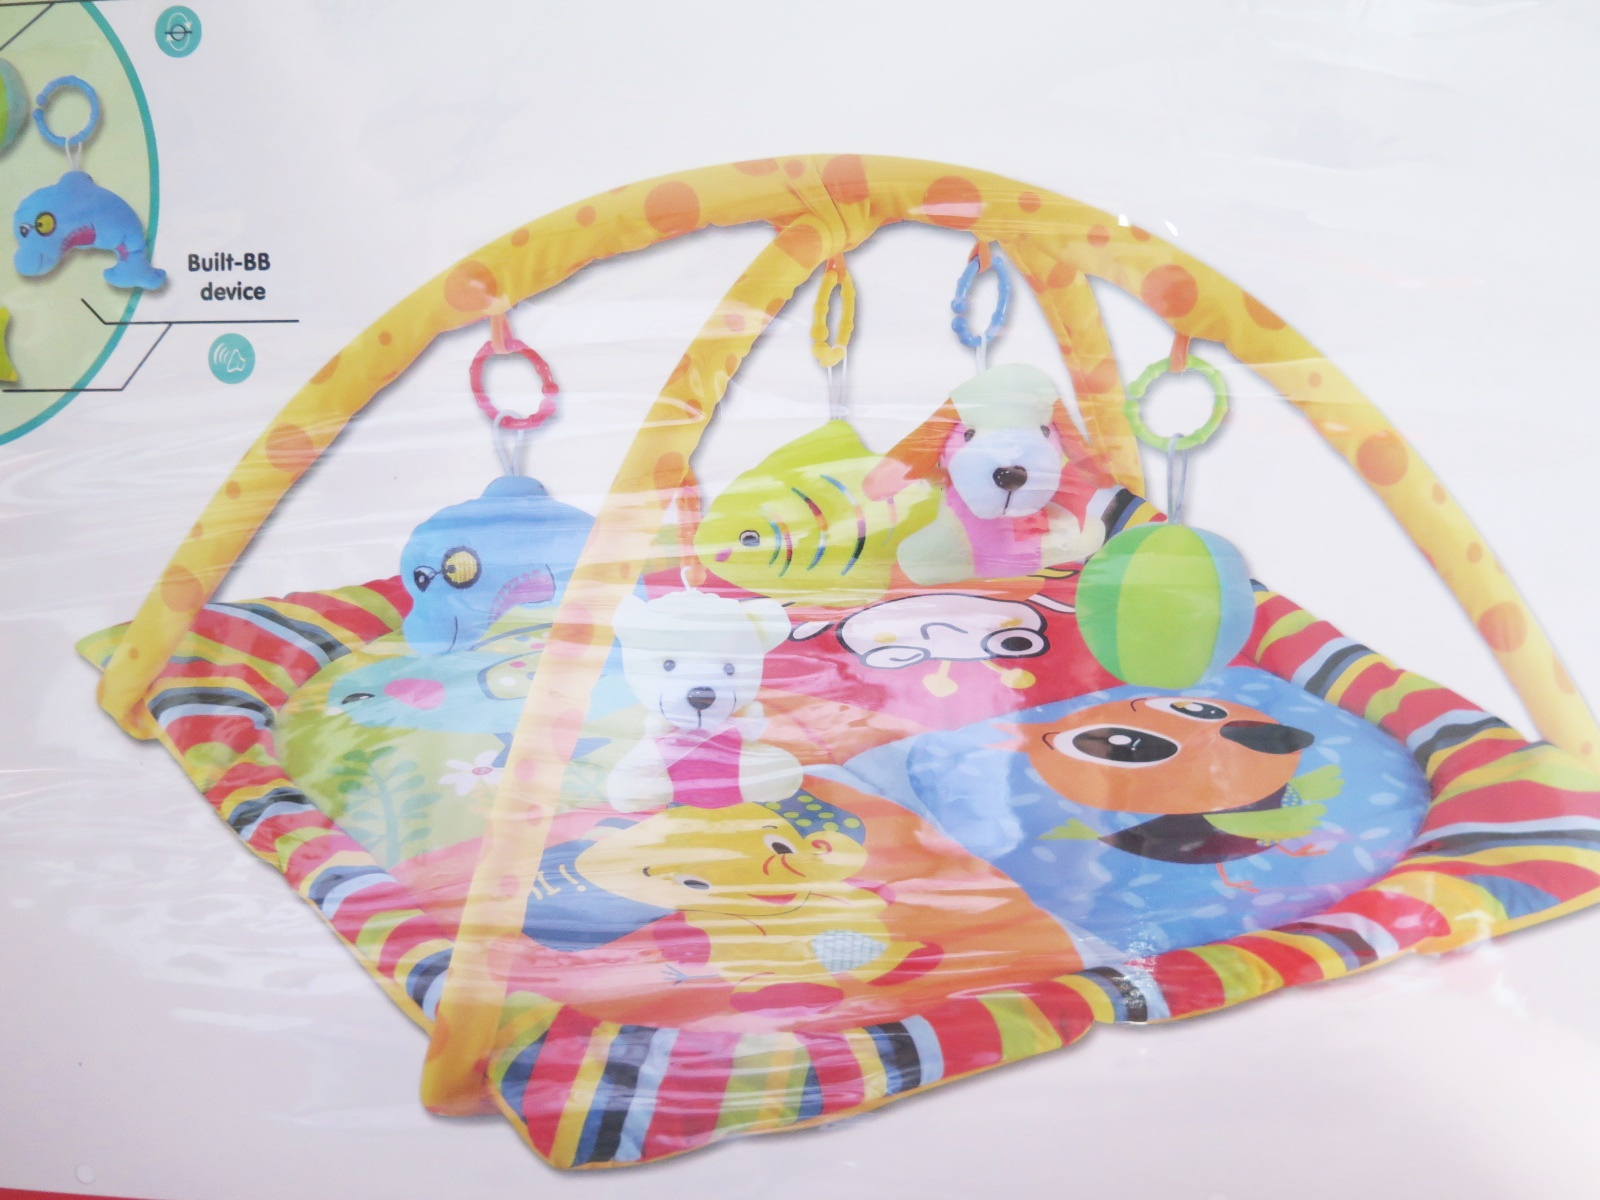 16a64a30cef0 Adventure Playmat for Children and baby